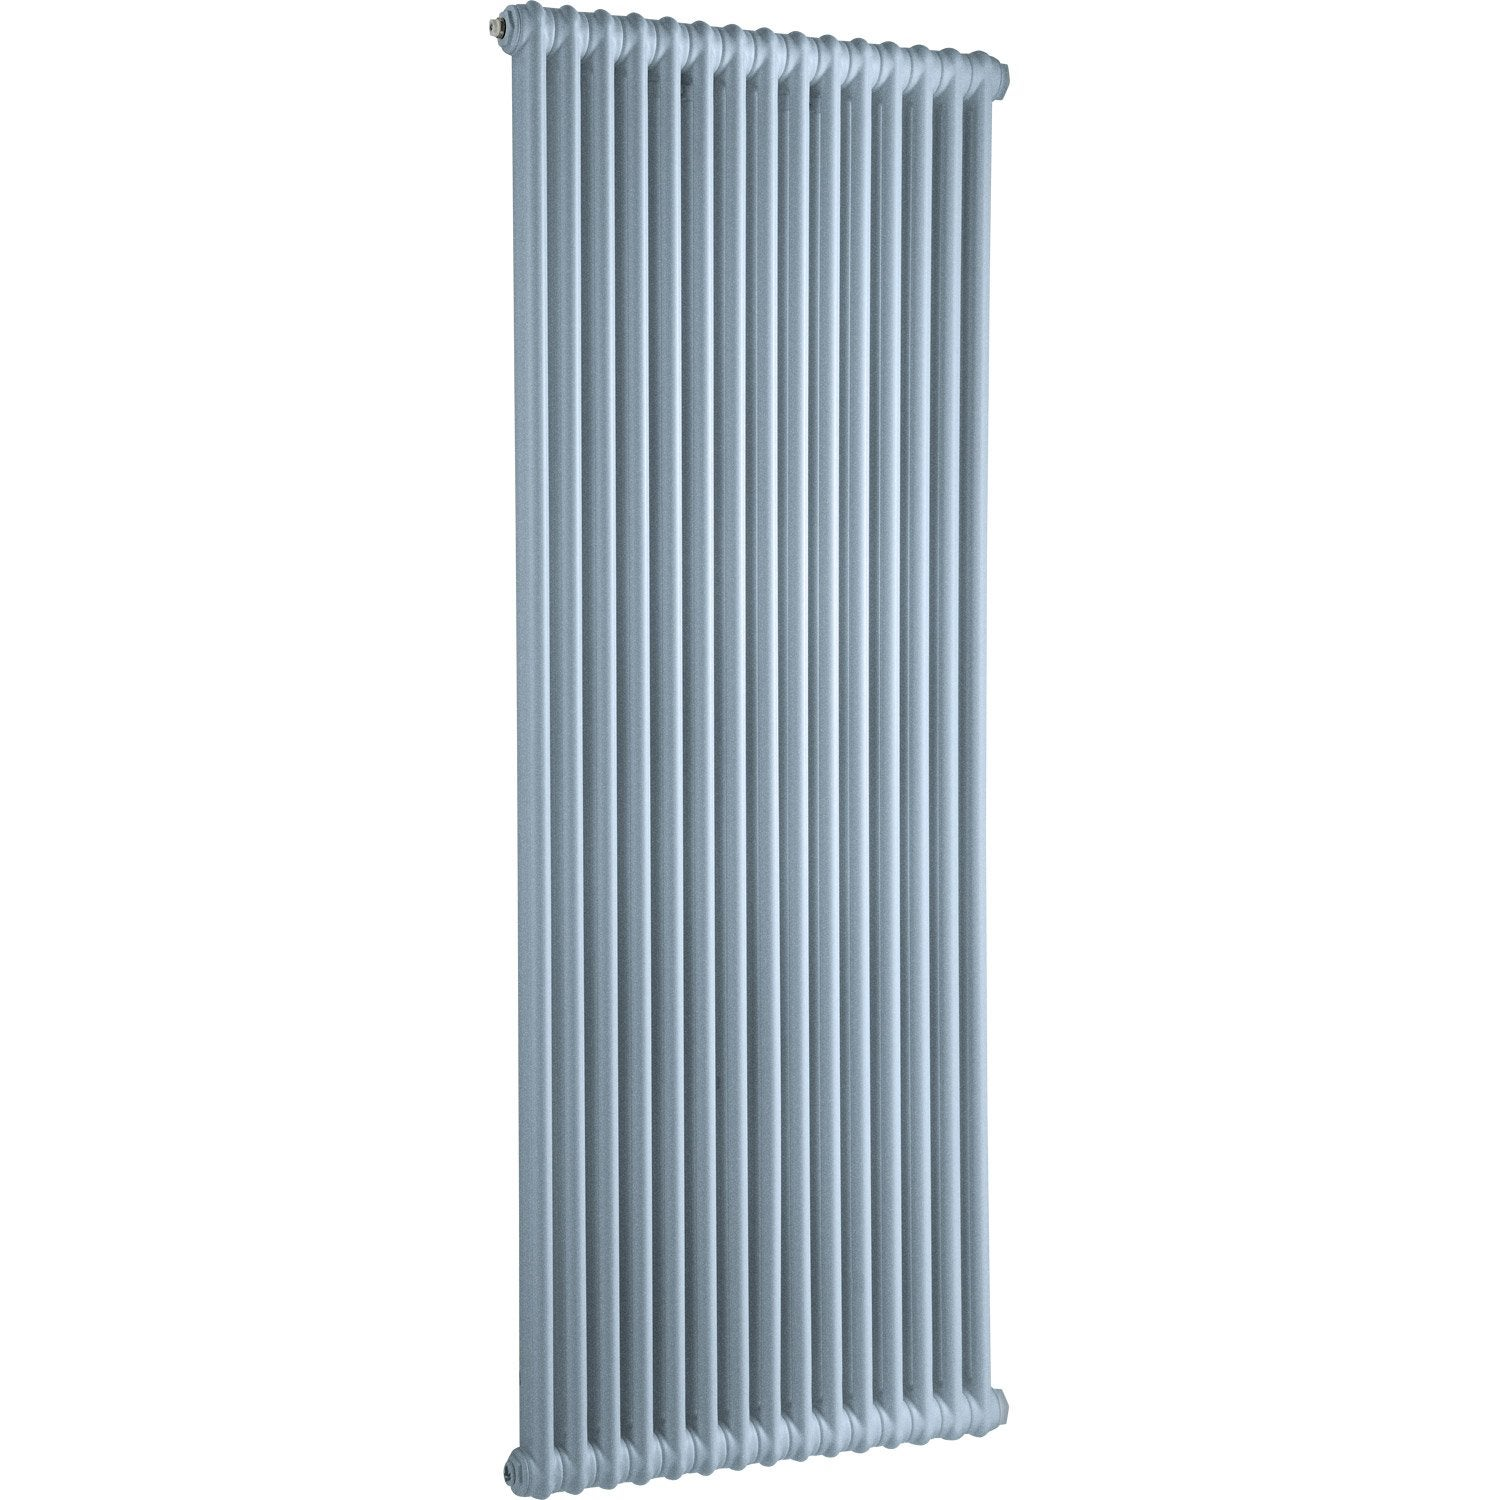 radiateur chauffage central irsap tesi cm 1864 w leroy merlin. Black Bedroom Furniture Sets. Home Design Ideas